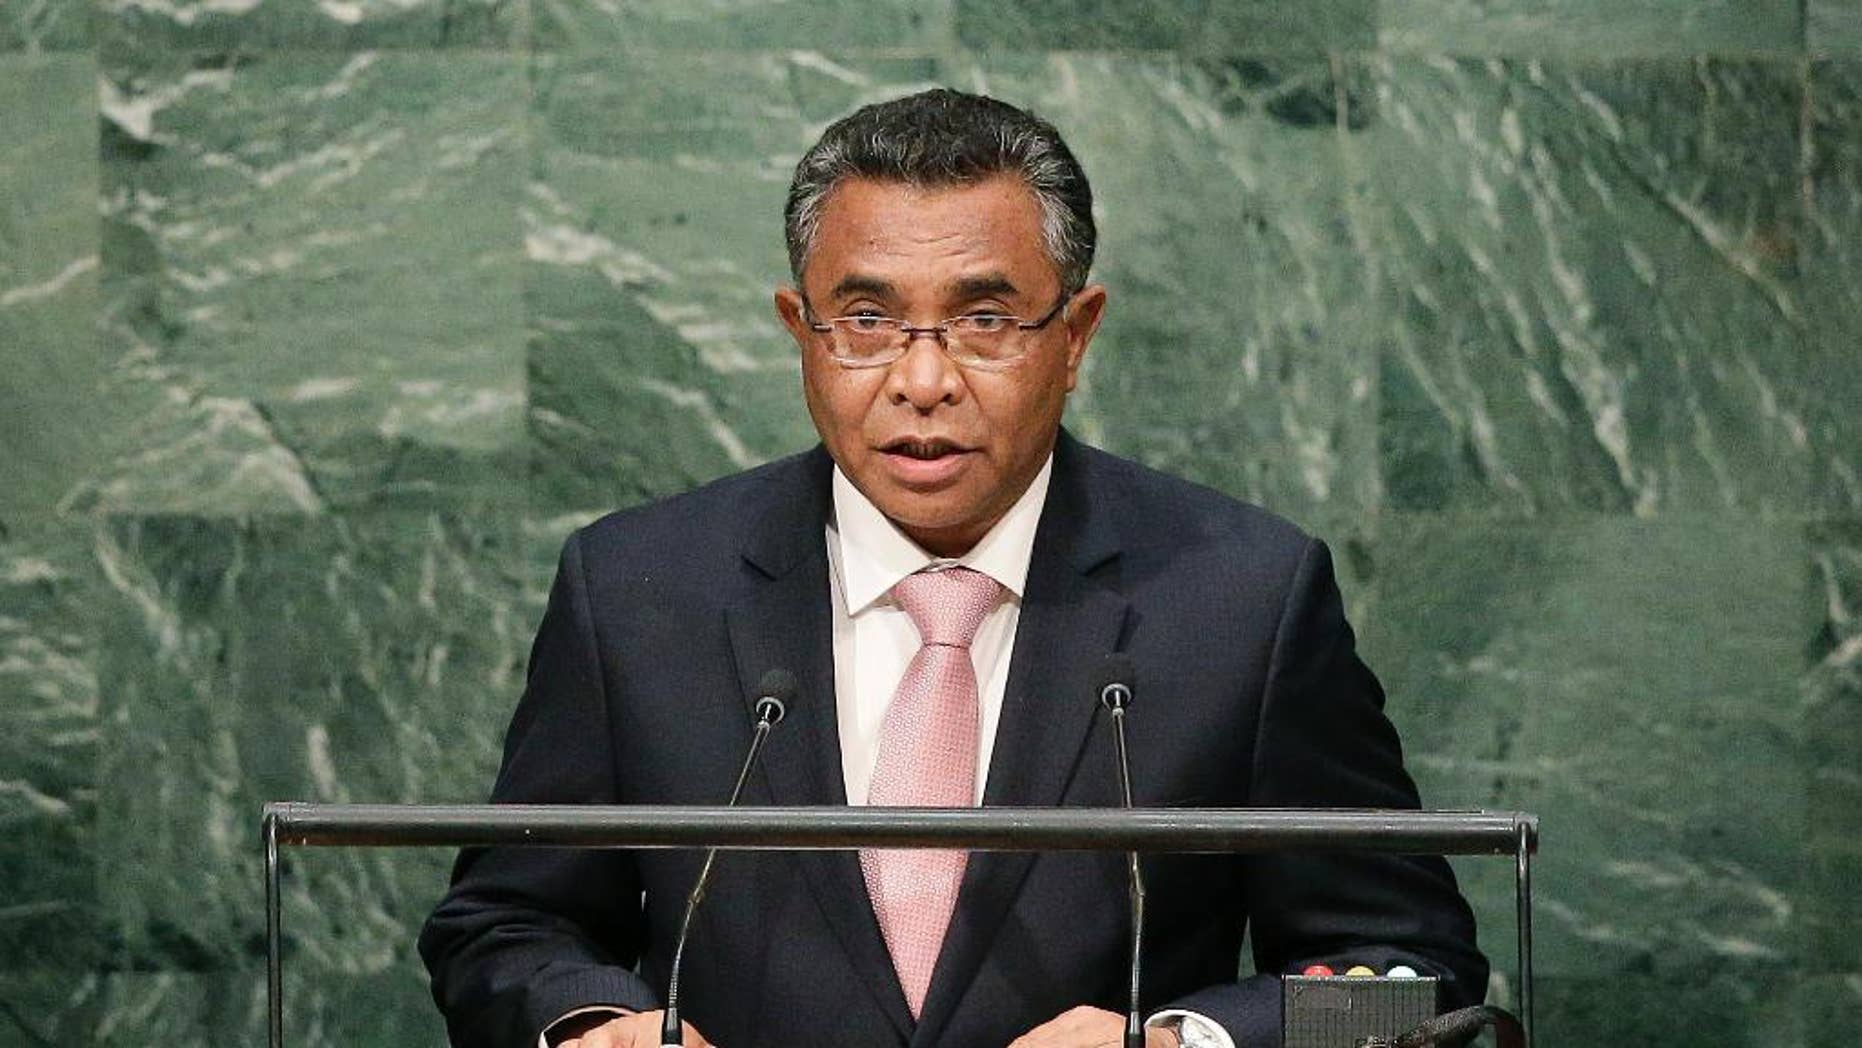 """FILE - In this Oct. 1, 2015 file photo, East Timorese Prime Minister Rui Maria de Araujo speaks during the 70th session of the United Nations General Assembly at the U.N. headquarters. Two East Timorese journalists are going on trial in a criminal defamation case brought by Araujo that has alarmed press freedom groups. Raimundos Oki and his former boss Lourenco Vicente Martins are charged with """"slanderous denunciation"""" and face up to three years in prison if found guilty. The trial is set to begin Friday, Oct. 7, 2016. Oki and Martins published a story in the Timor Post last year about Araujo's involvement in a state contract for information technology services when he was an adviser to East Timor's finance minister in 2014. (AP Photo/Julie Jacobson, File)"""